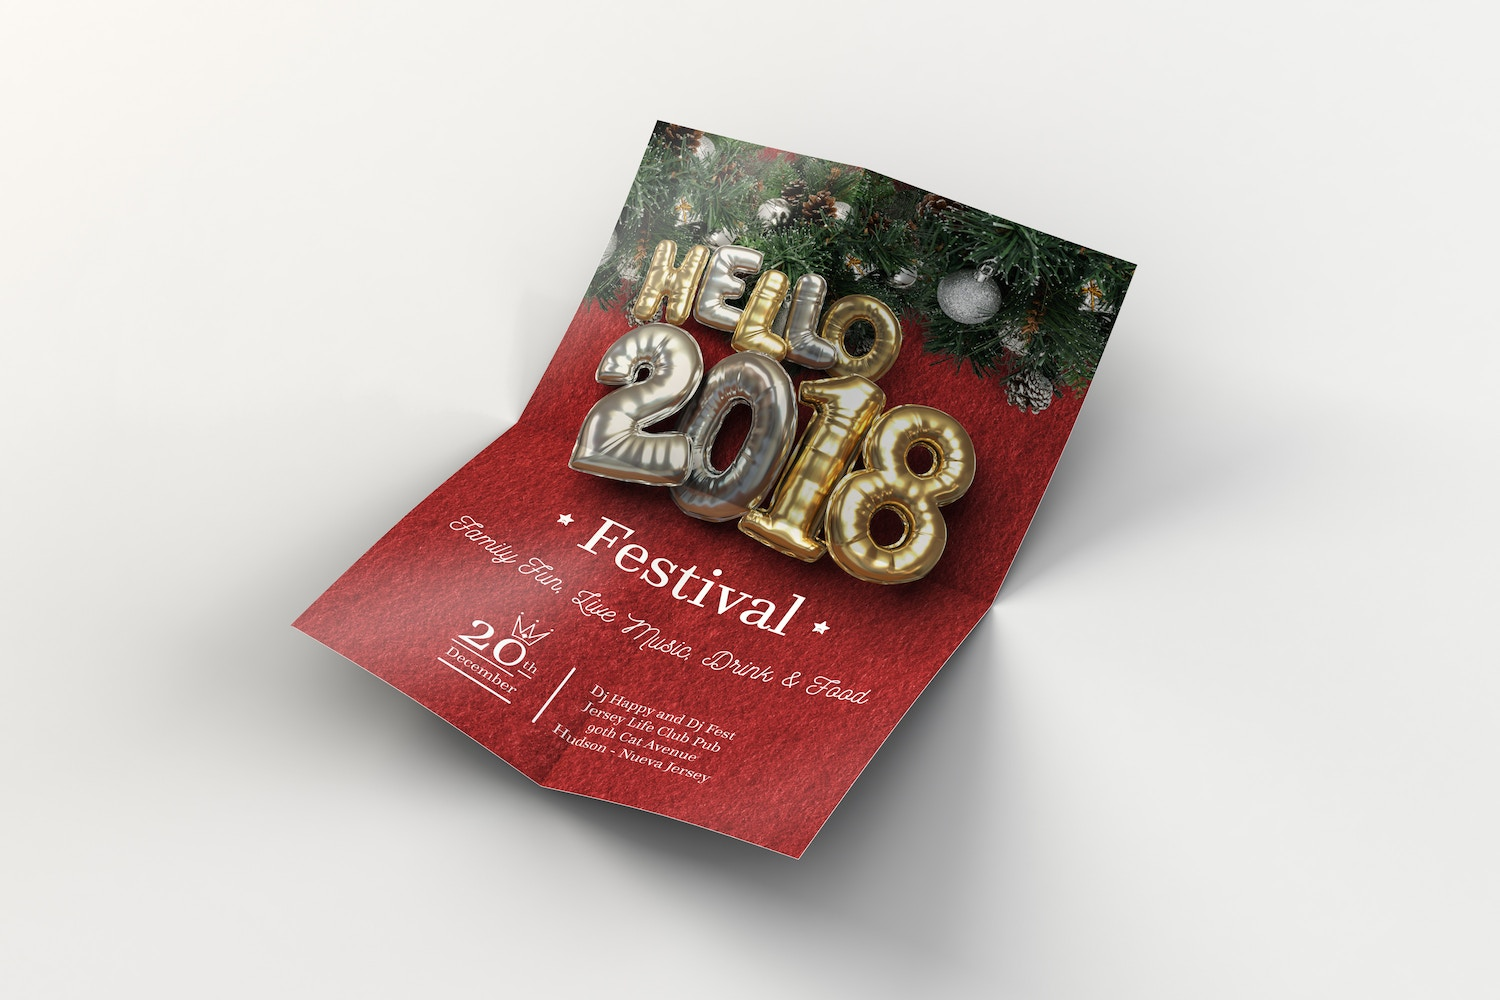 Balloon Party, Christmas Flyer Template 2 by Original Mockups on Original Mockups